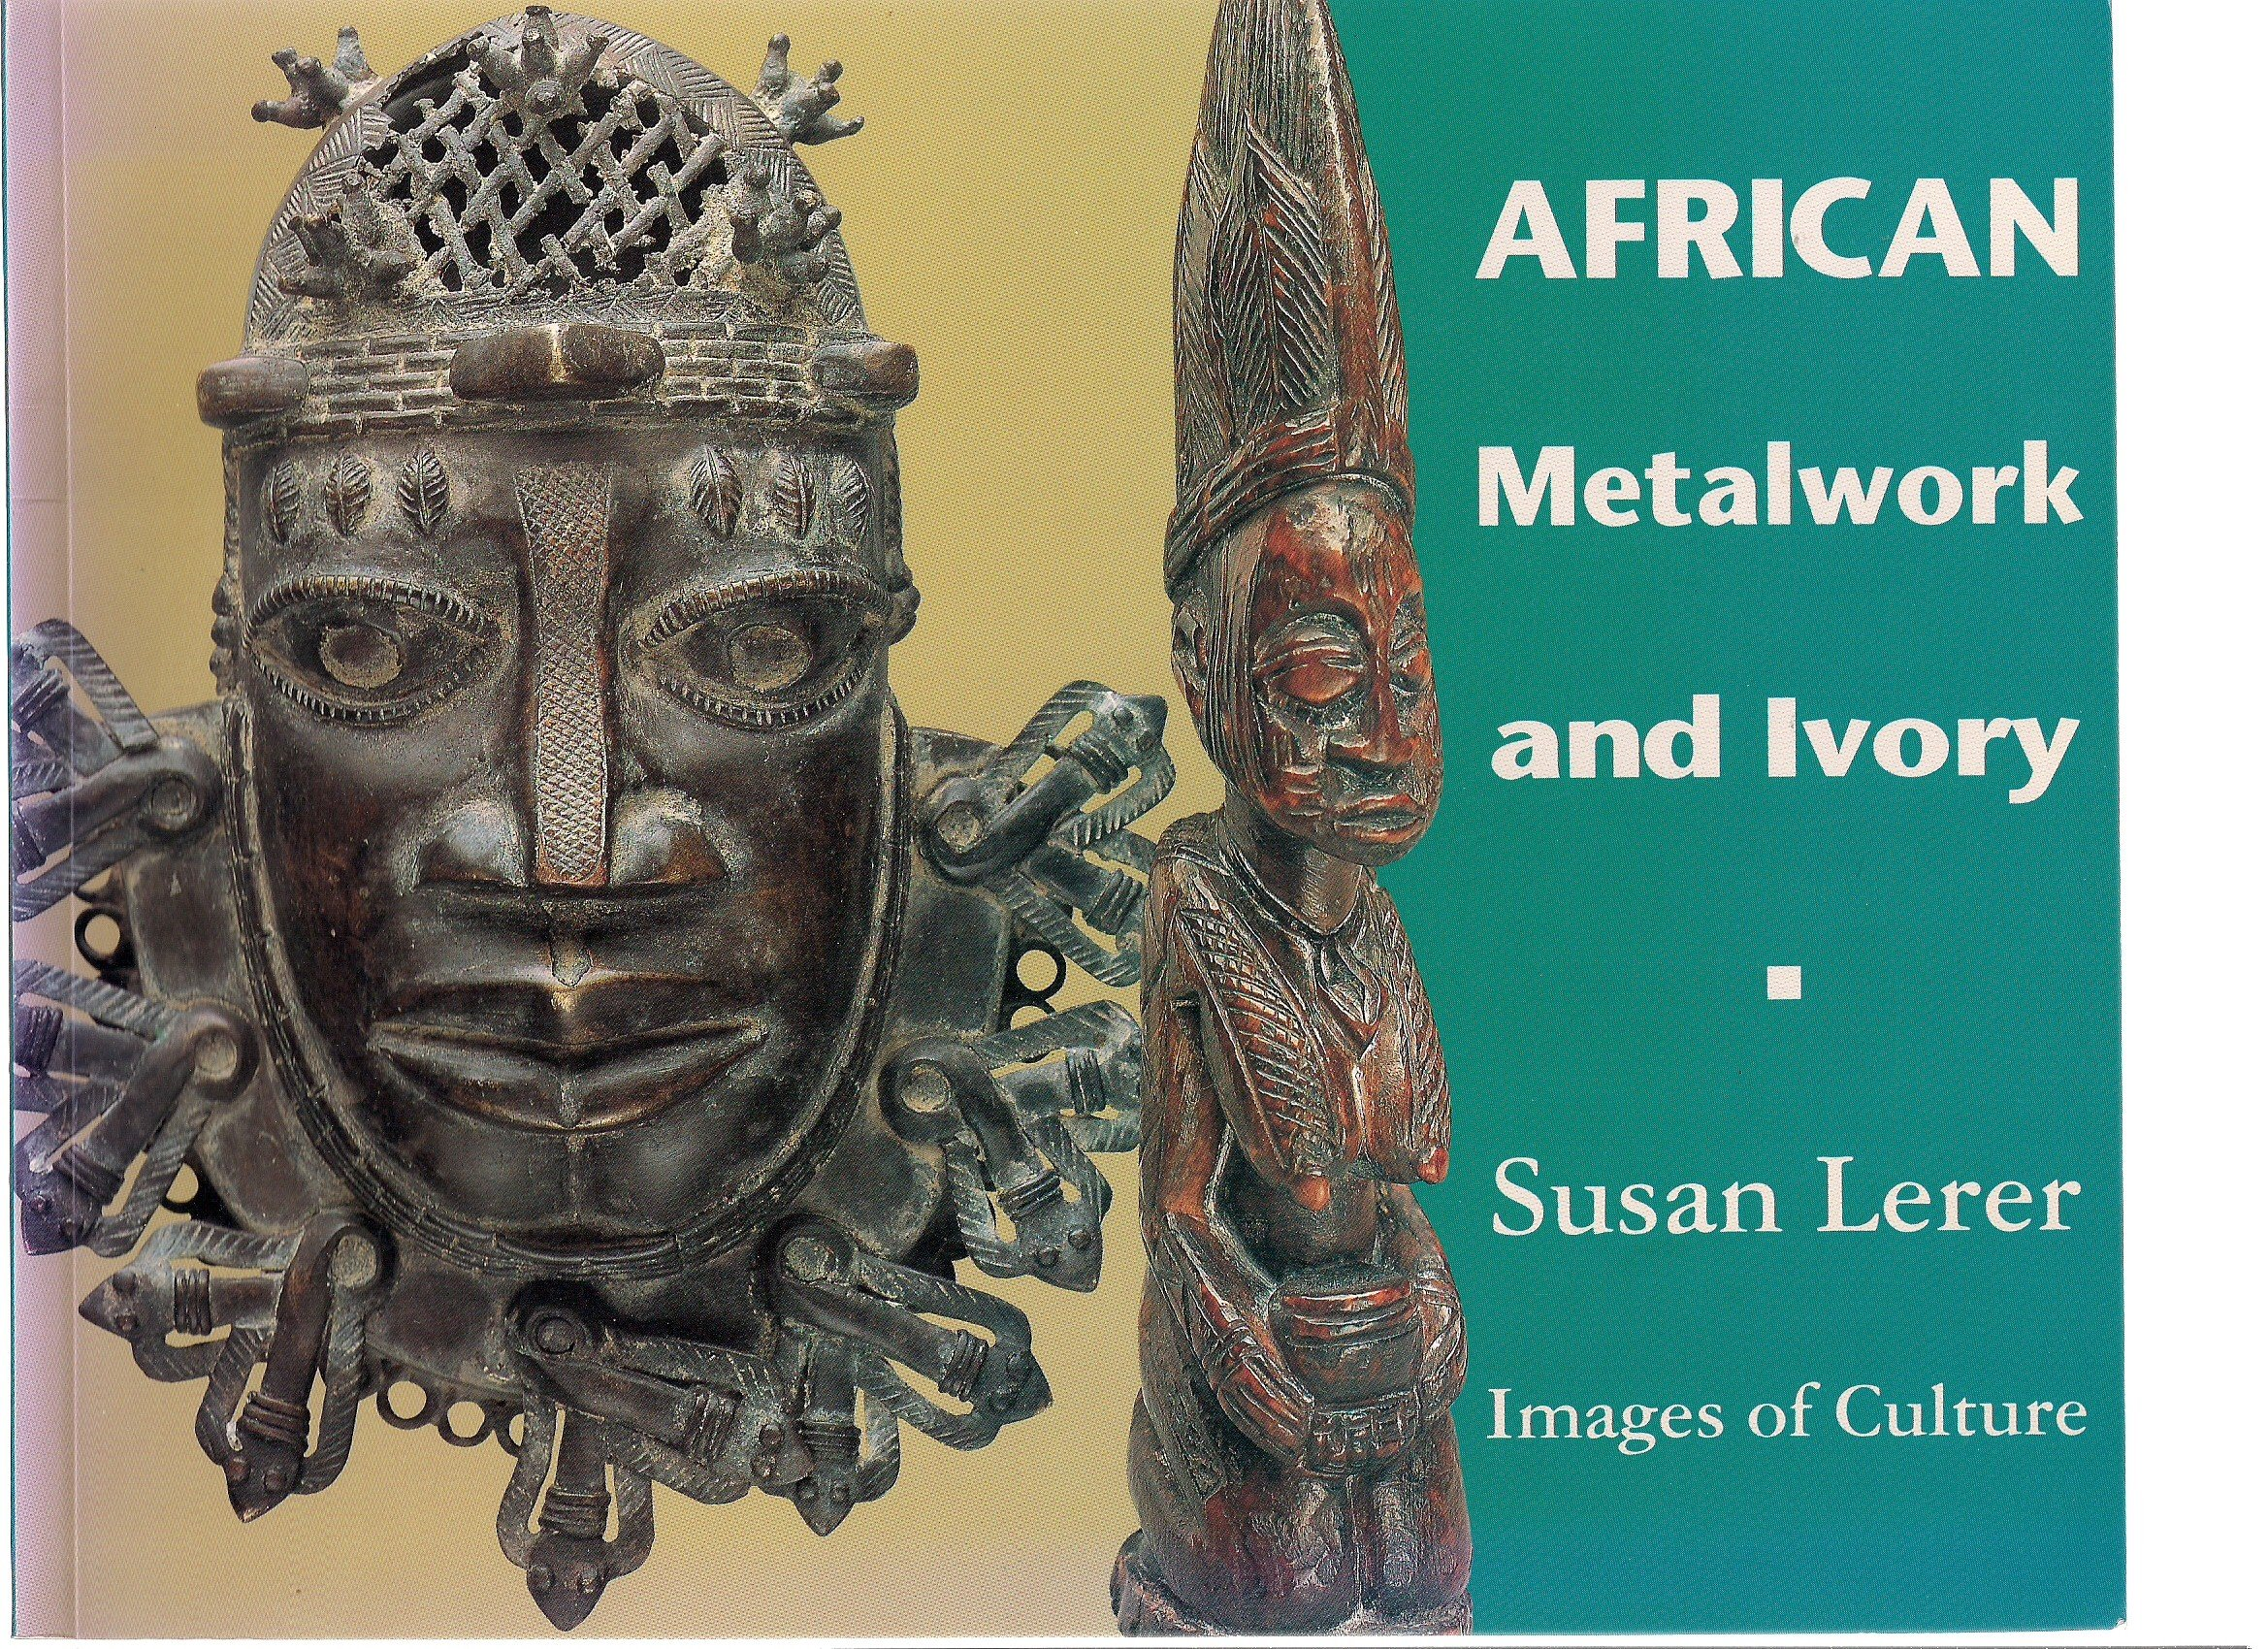 African Metalwork and Ivory